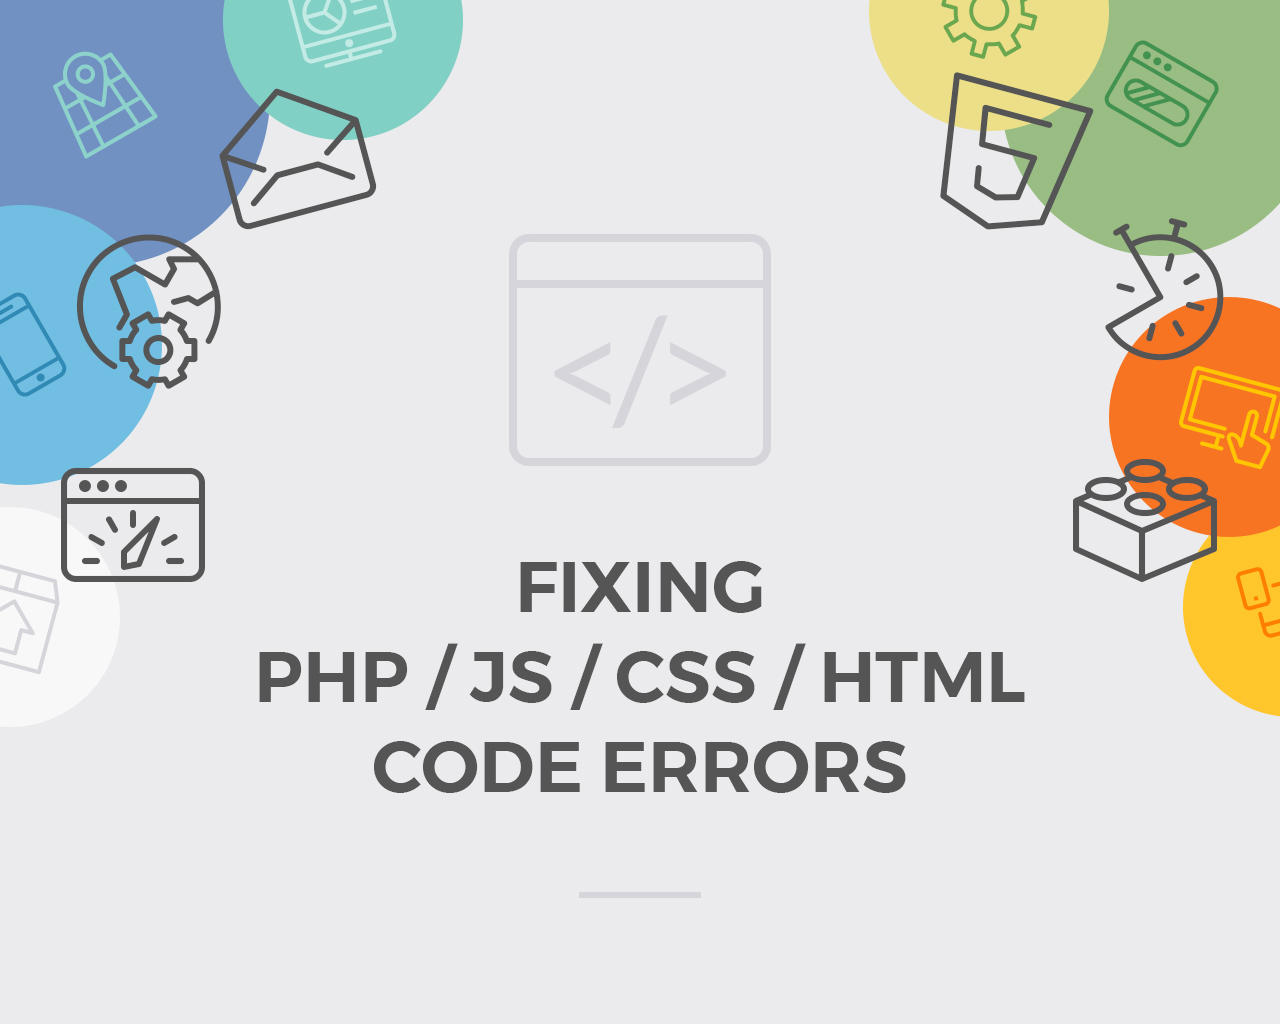 Fixing PHP/JS/CSS/HTML Code Errors by QuanticaLabs - 107751